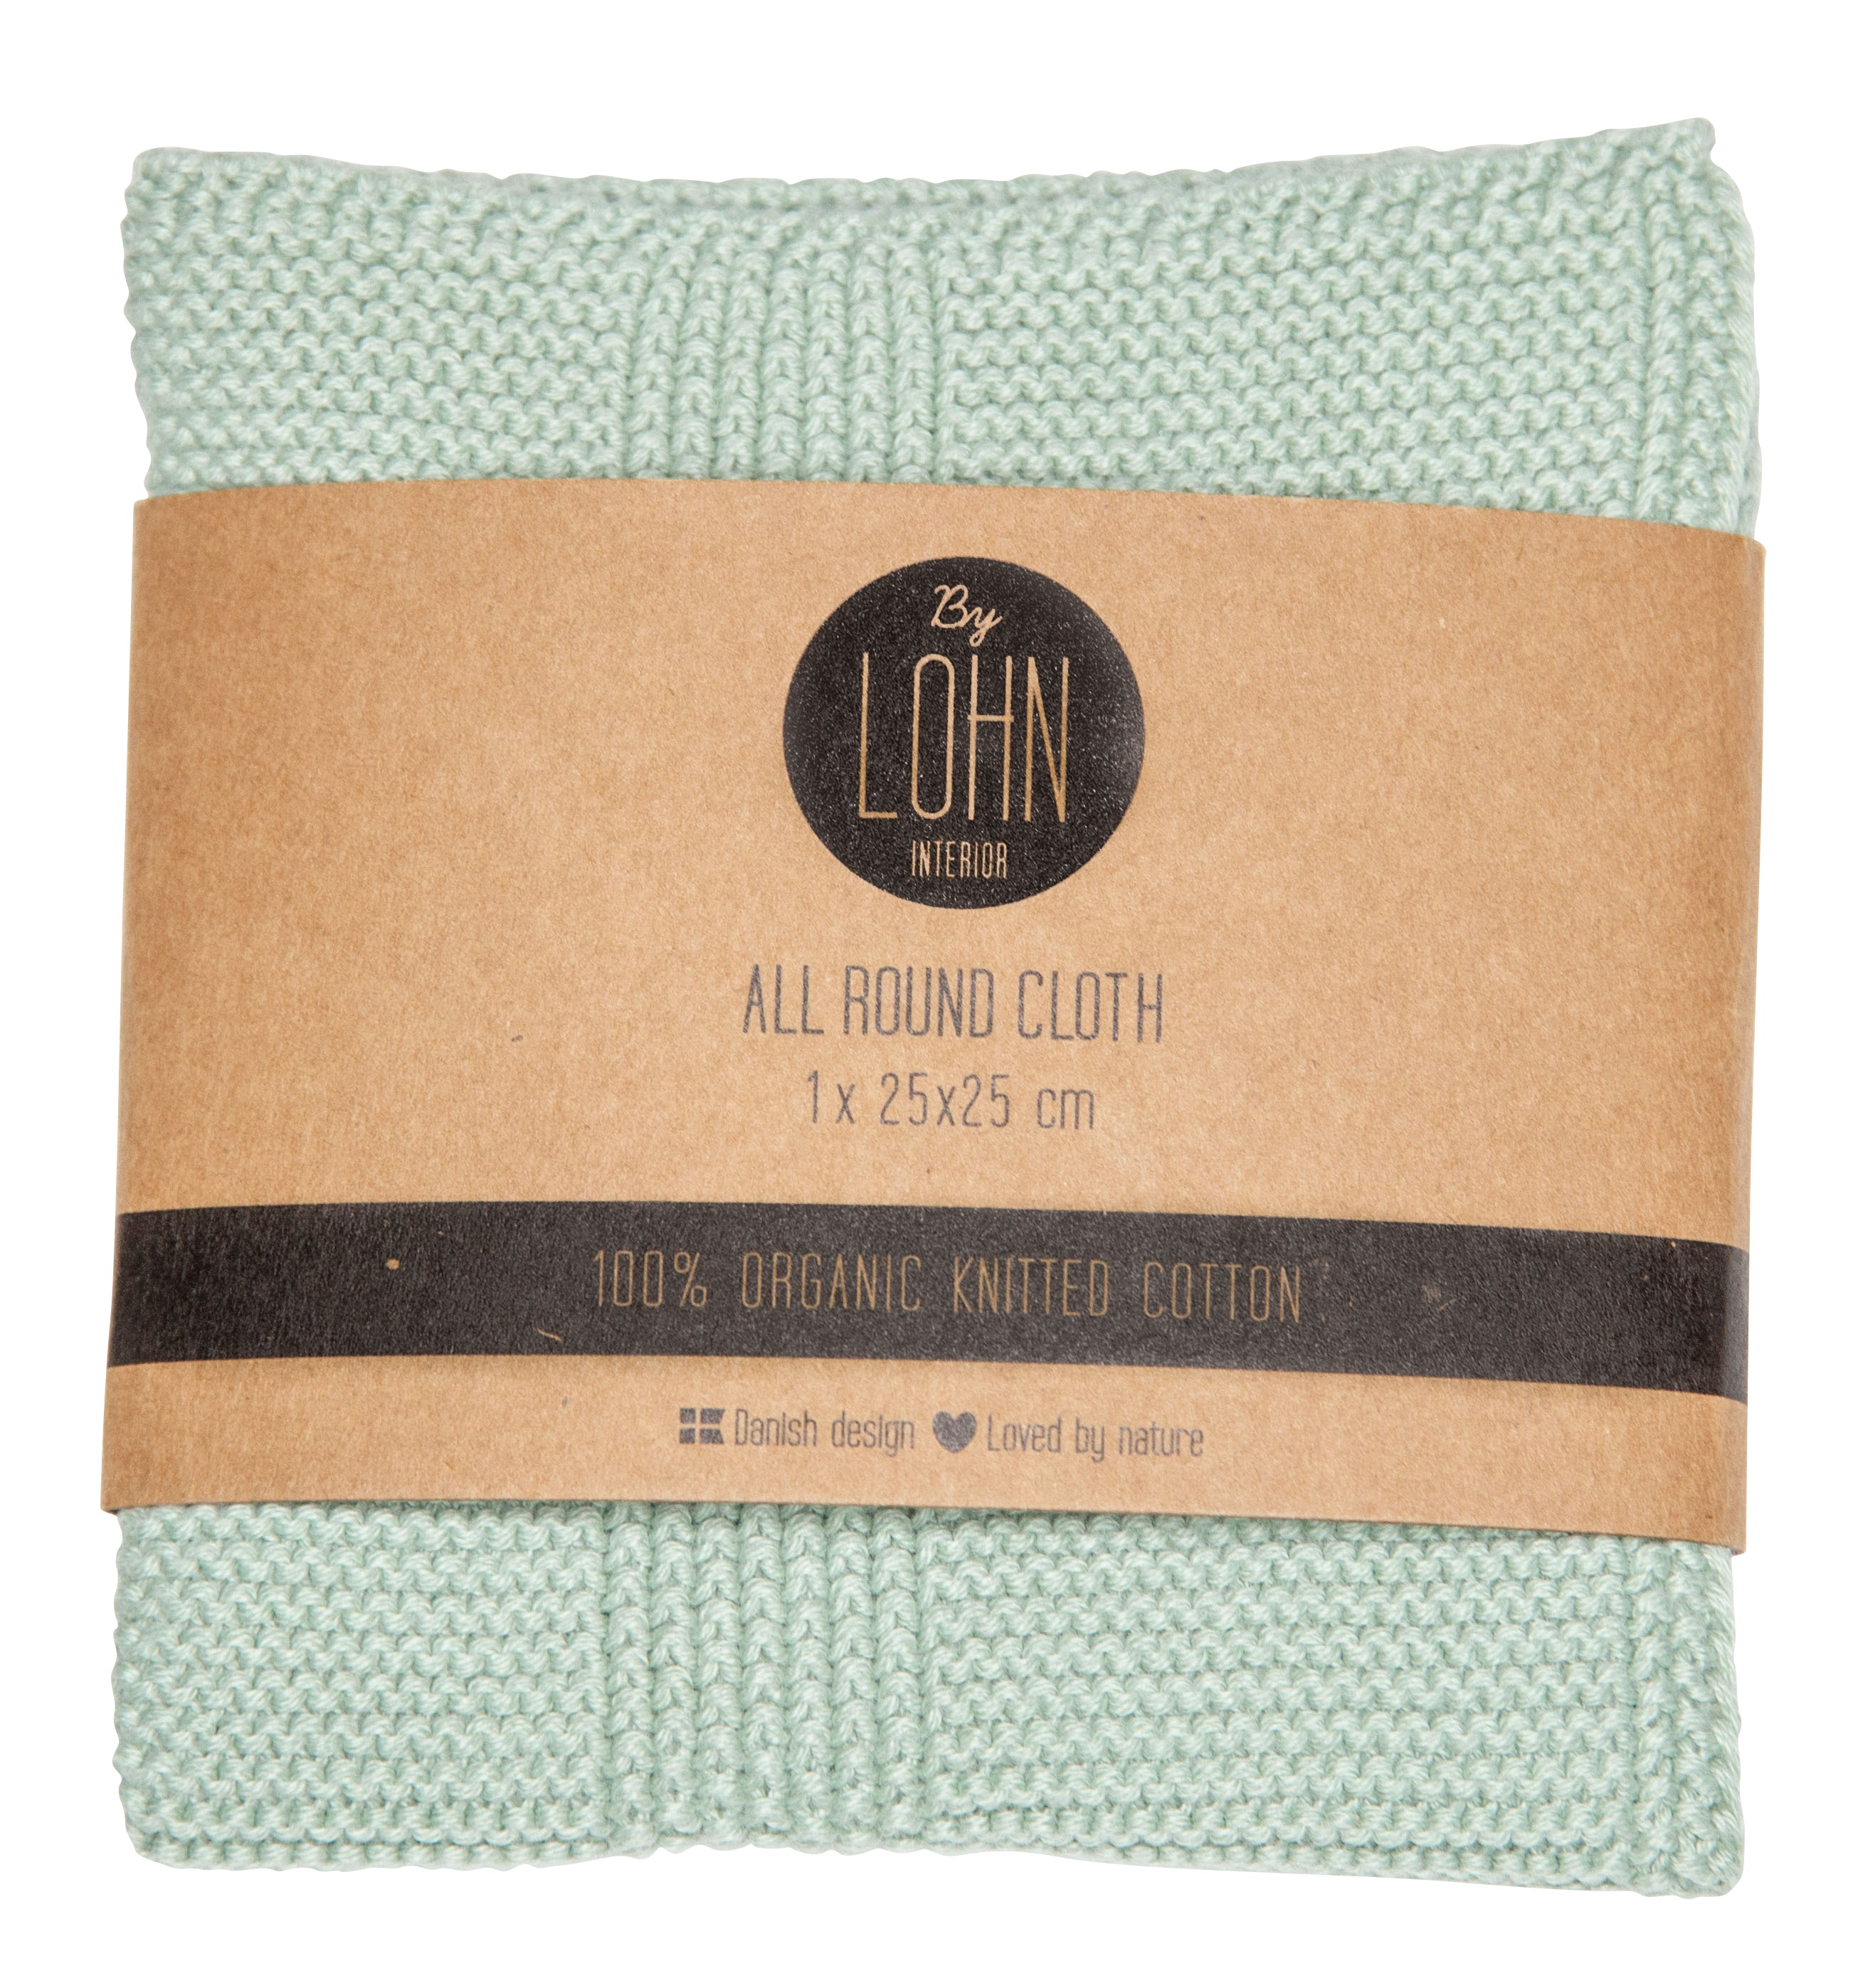 By LOHN – All round cloth 25 x 25 cm, Light Mint